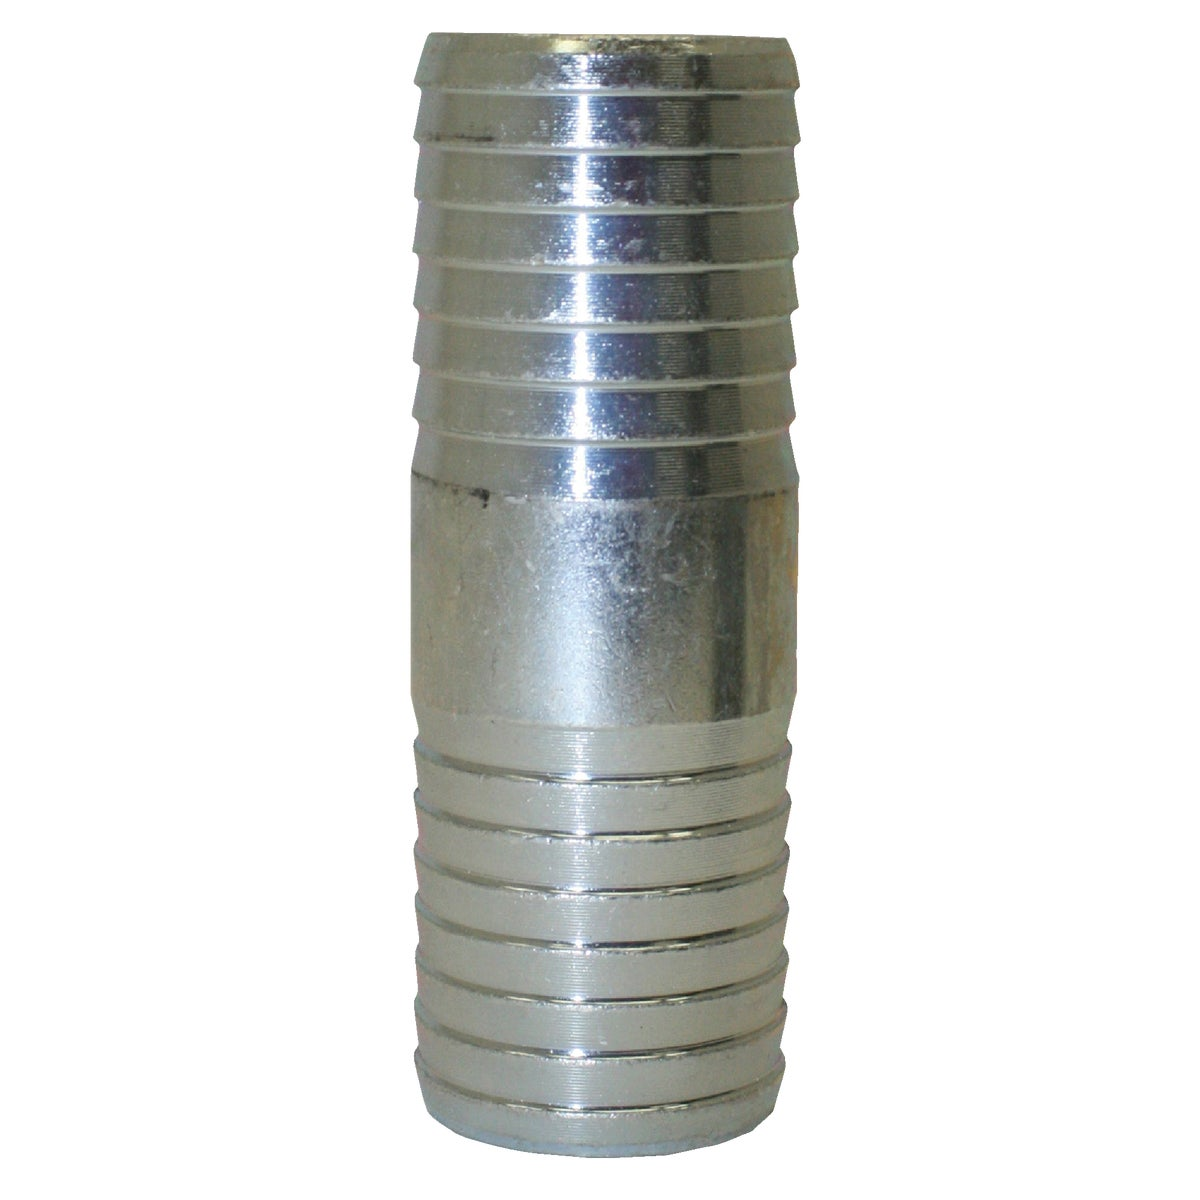 "1-1/4"" INSERT COUPLING - SCP125 by Merrill Mfg"